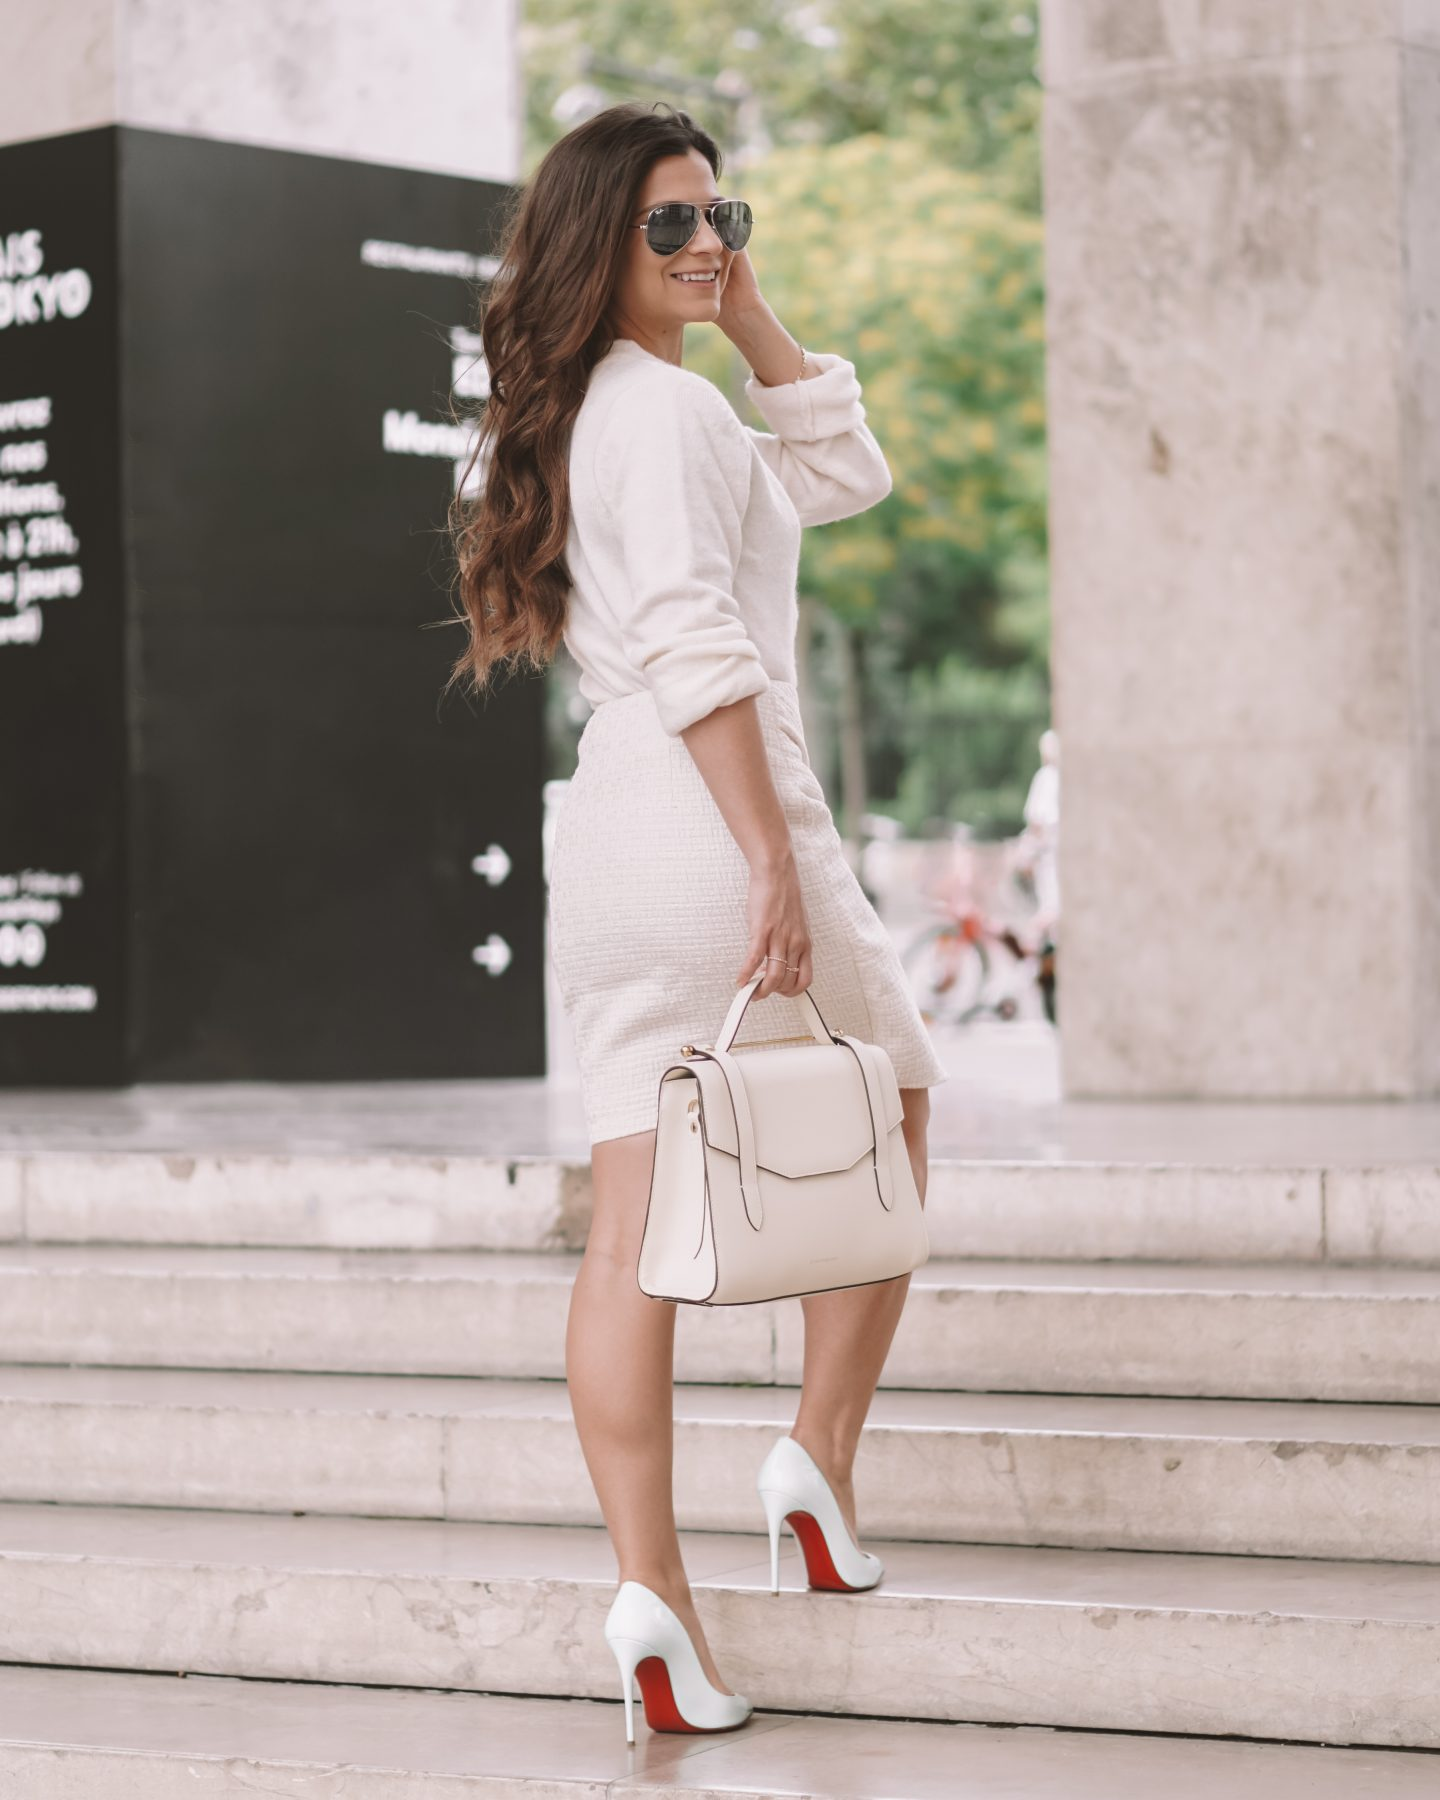 White Christian Louboutin shoes styled